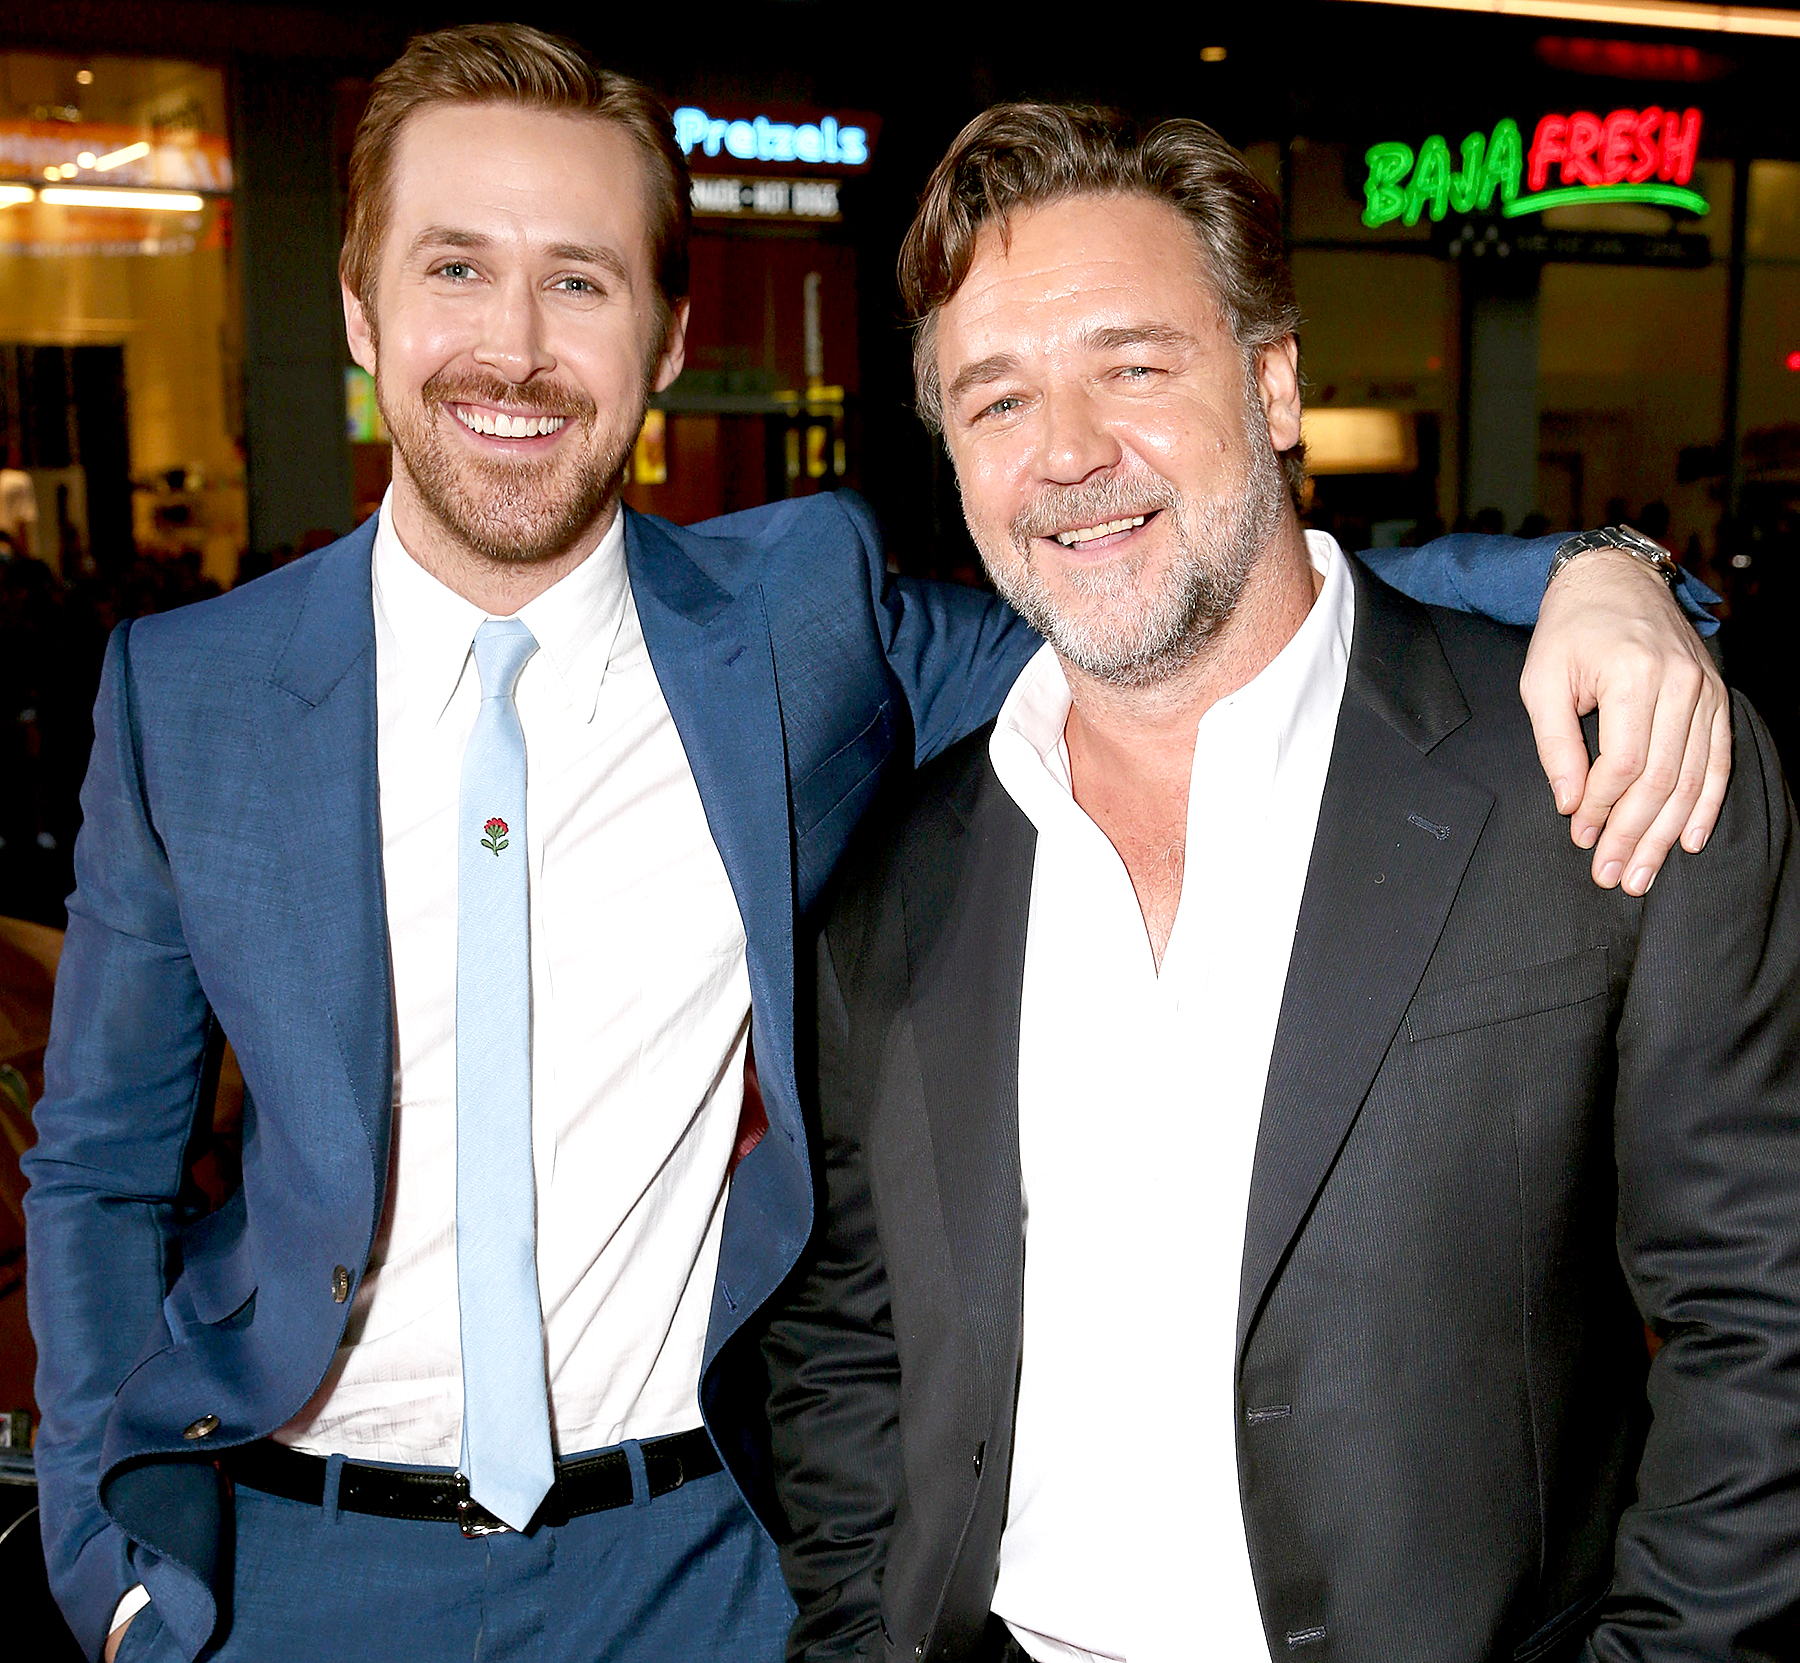 Ryan Gosling and Russell Crowe attend the premiere of Warner Bros. Pictures' 'The Nice Guys' at TCL Chinese Theatre on May 10, 2016 in Hollywood, California.